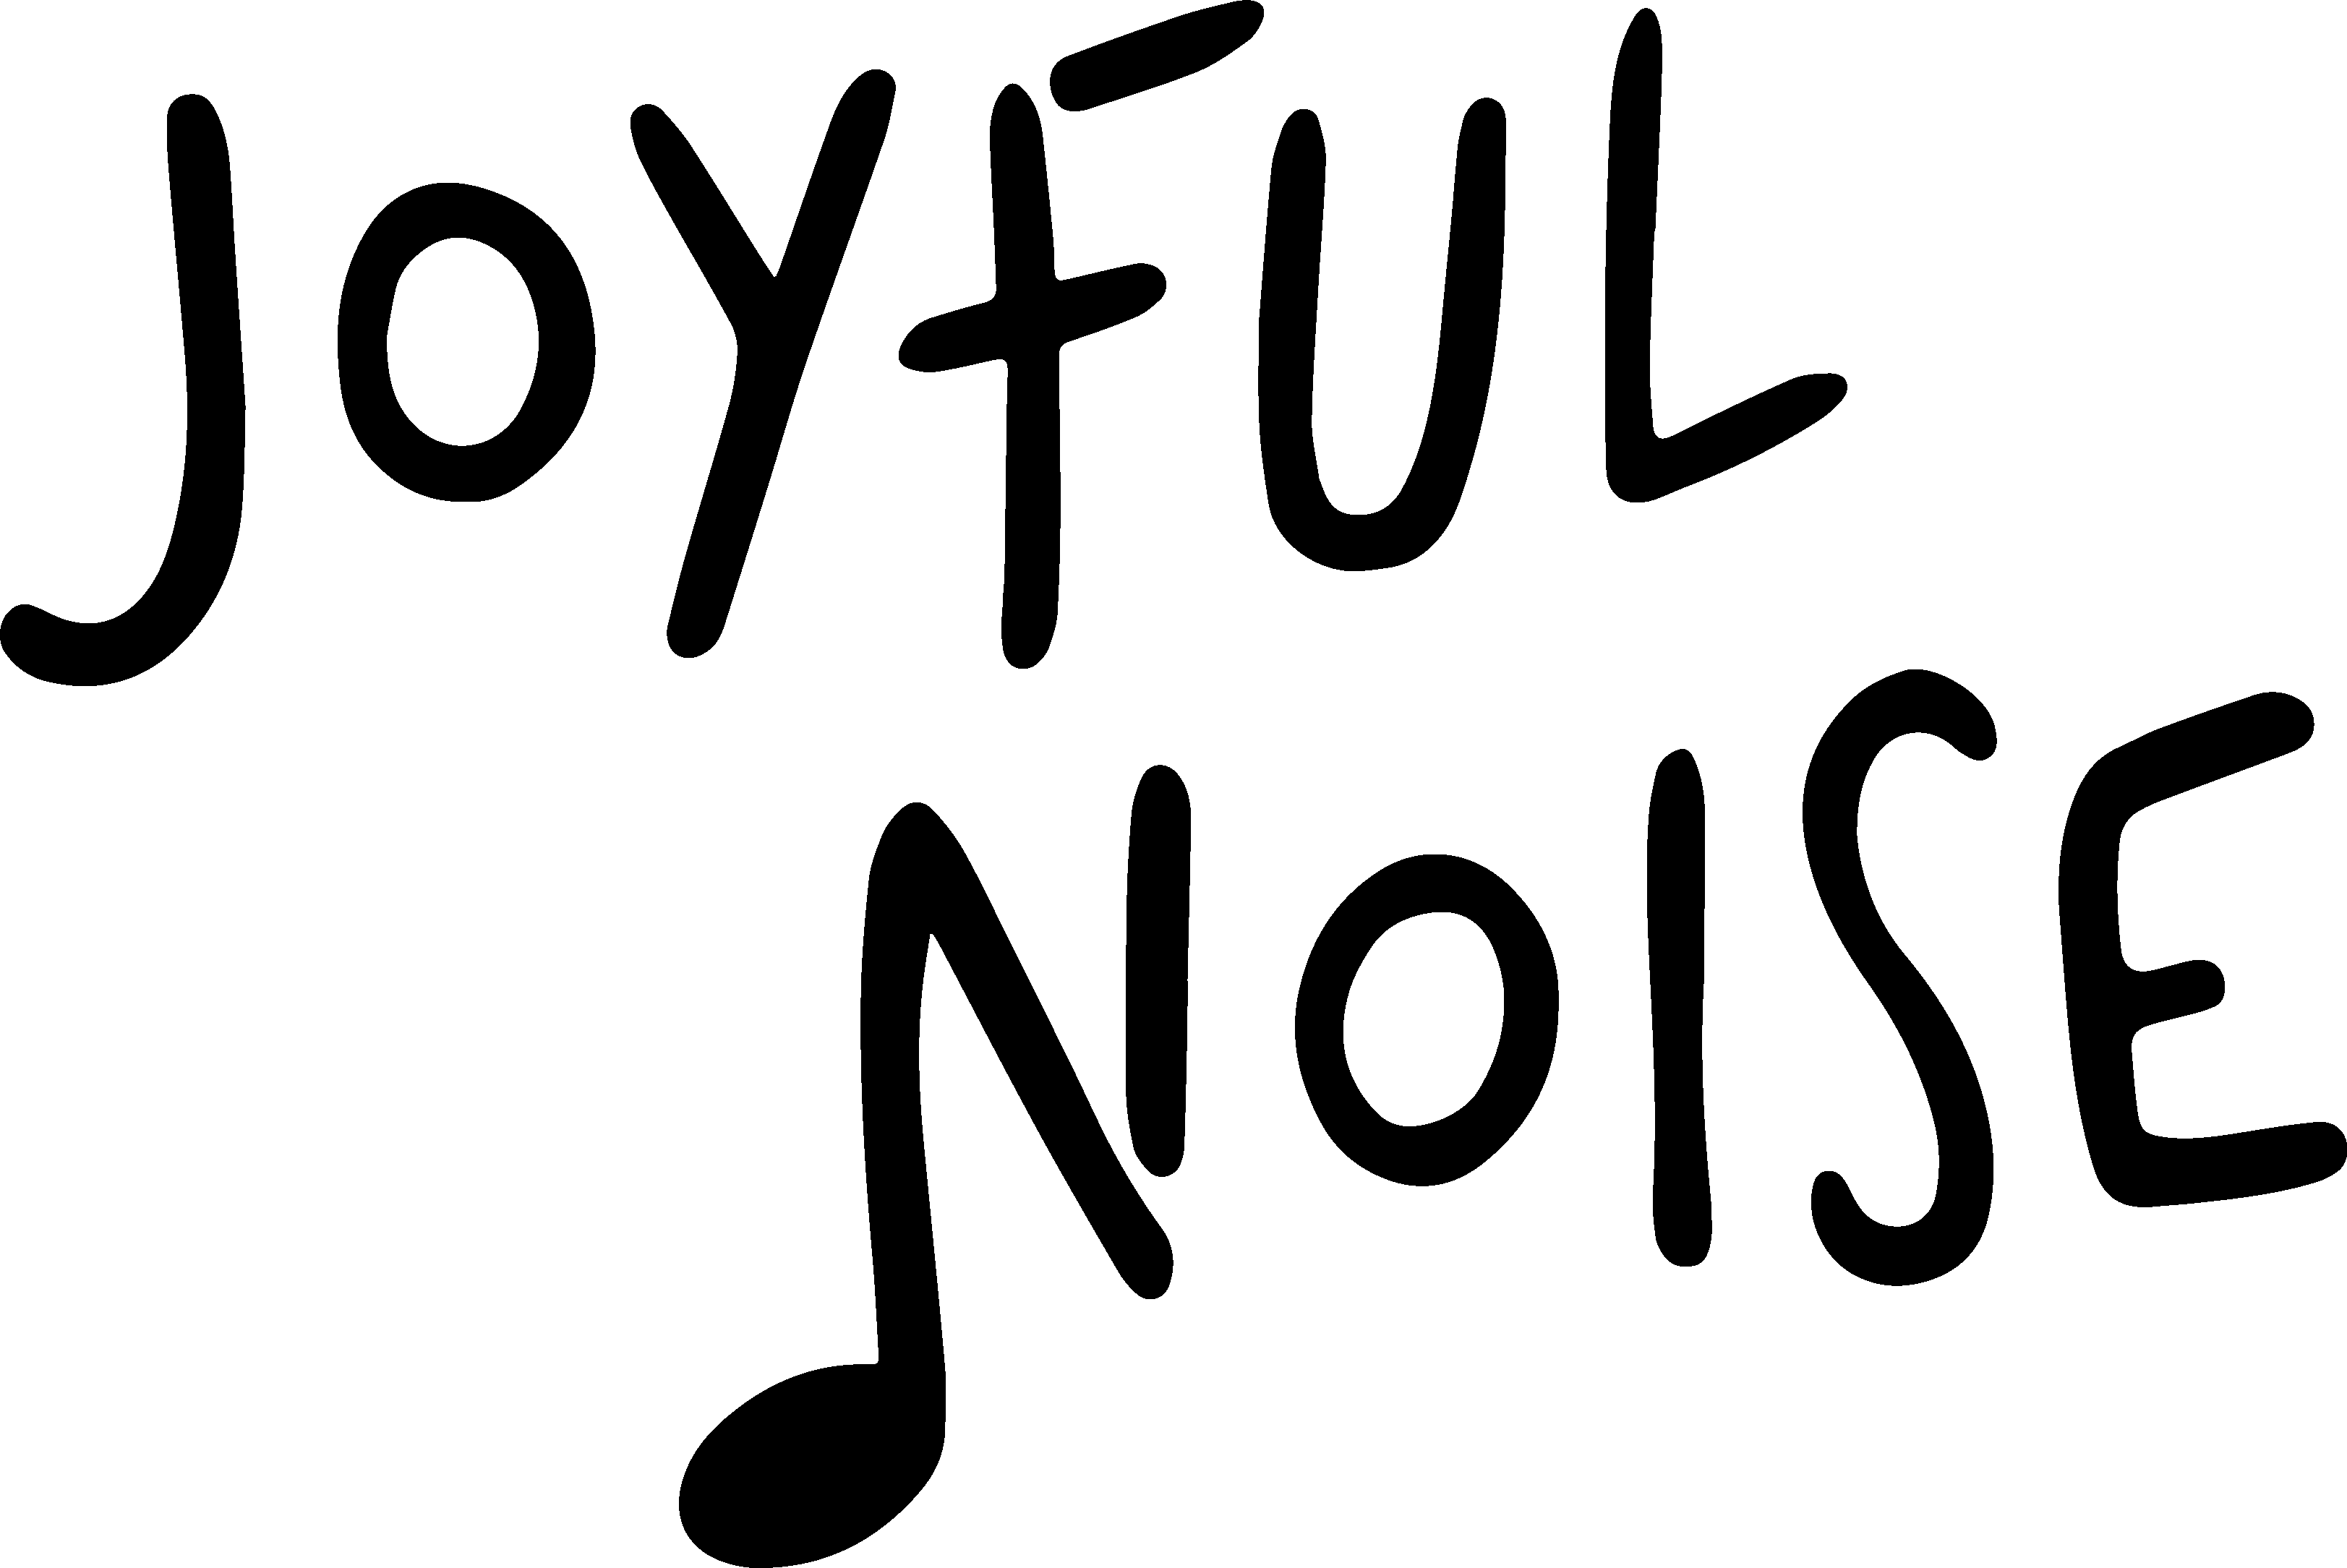 Gospelkoret Joyful Noise